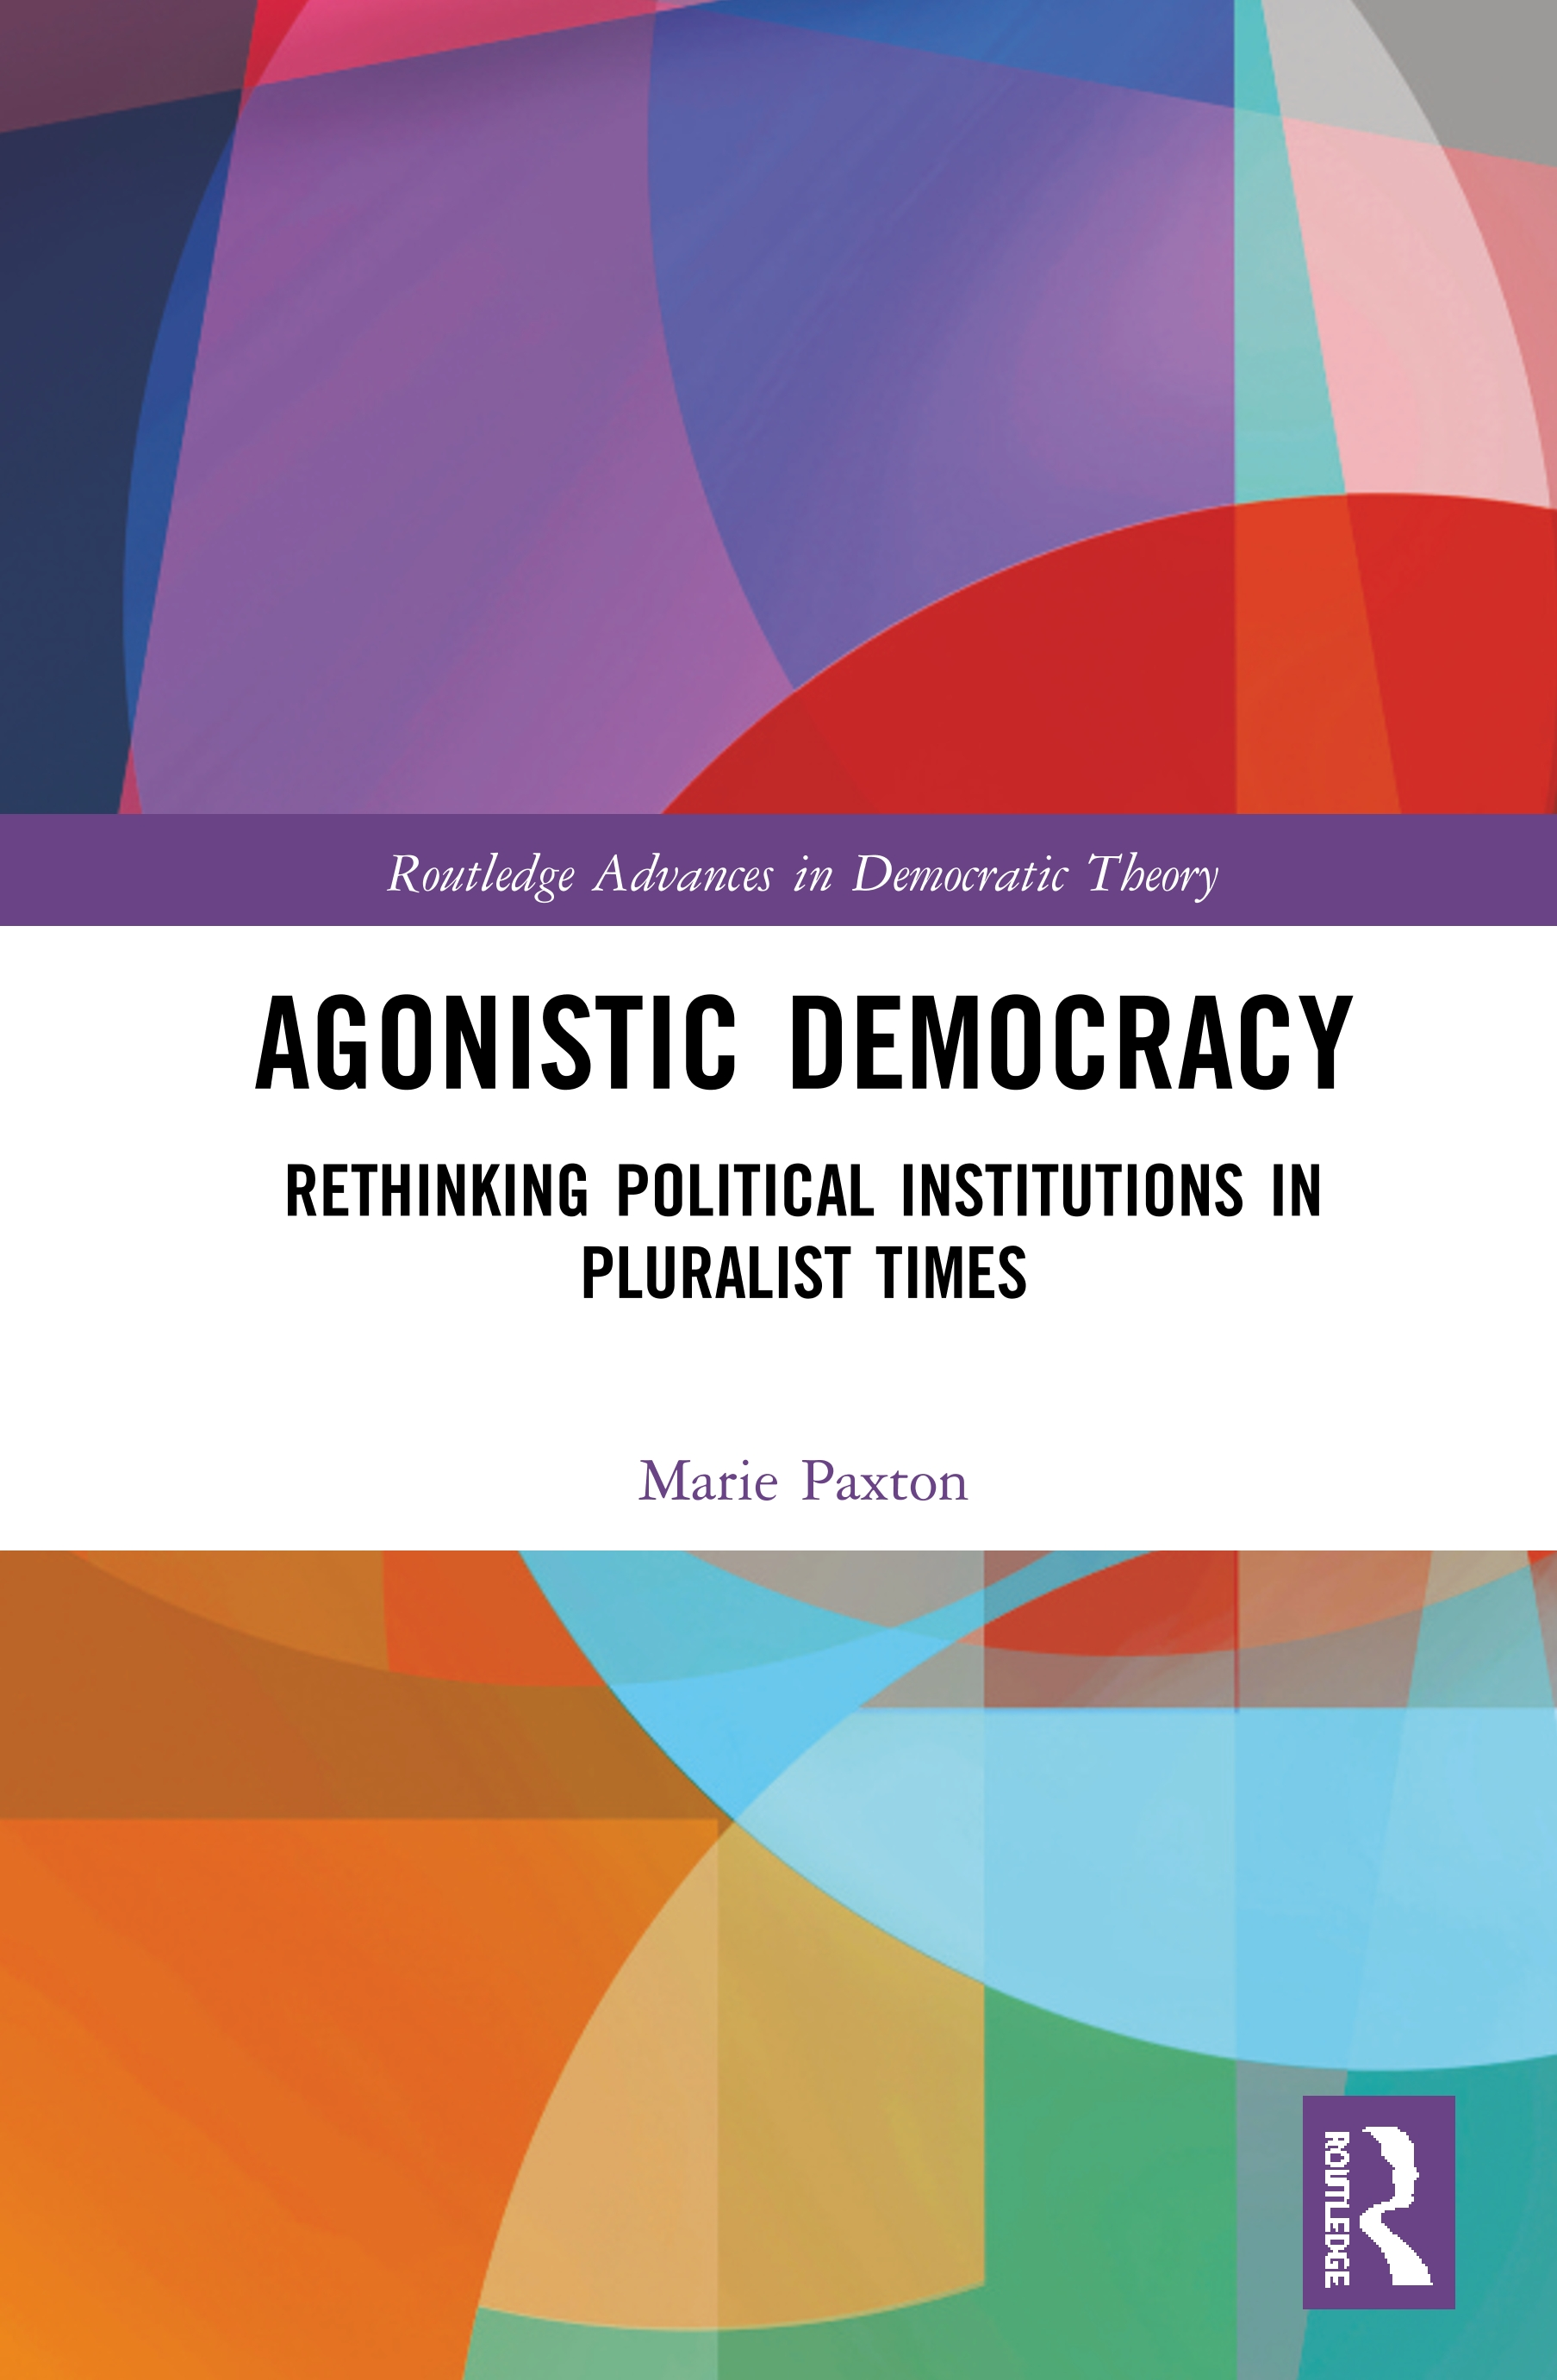 Agonistic Democracy: Rethinking Political Institutions in Pluralist Times book cover